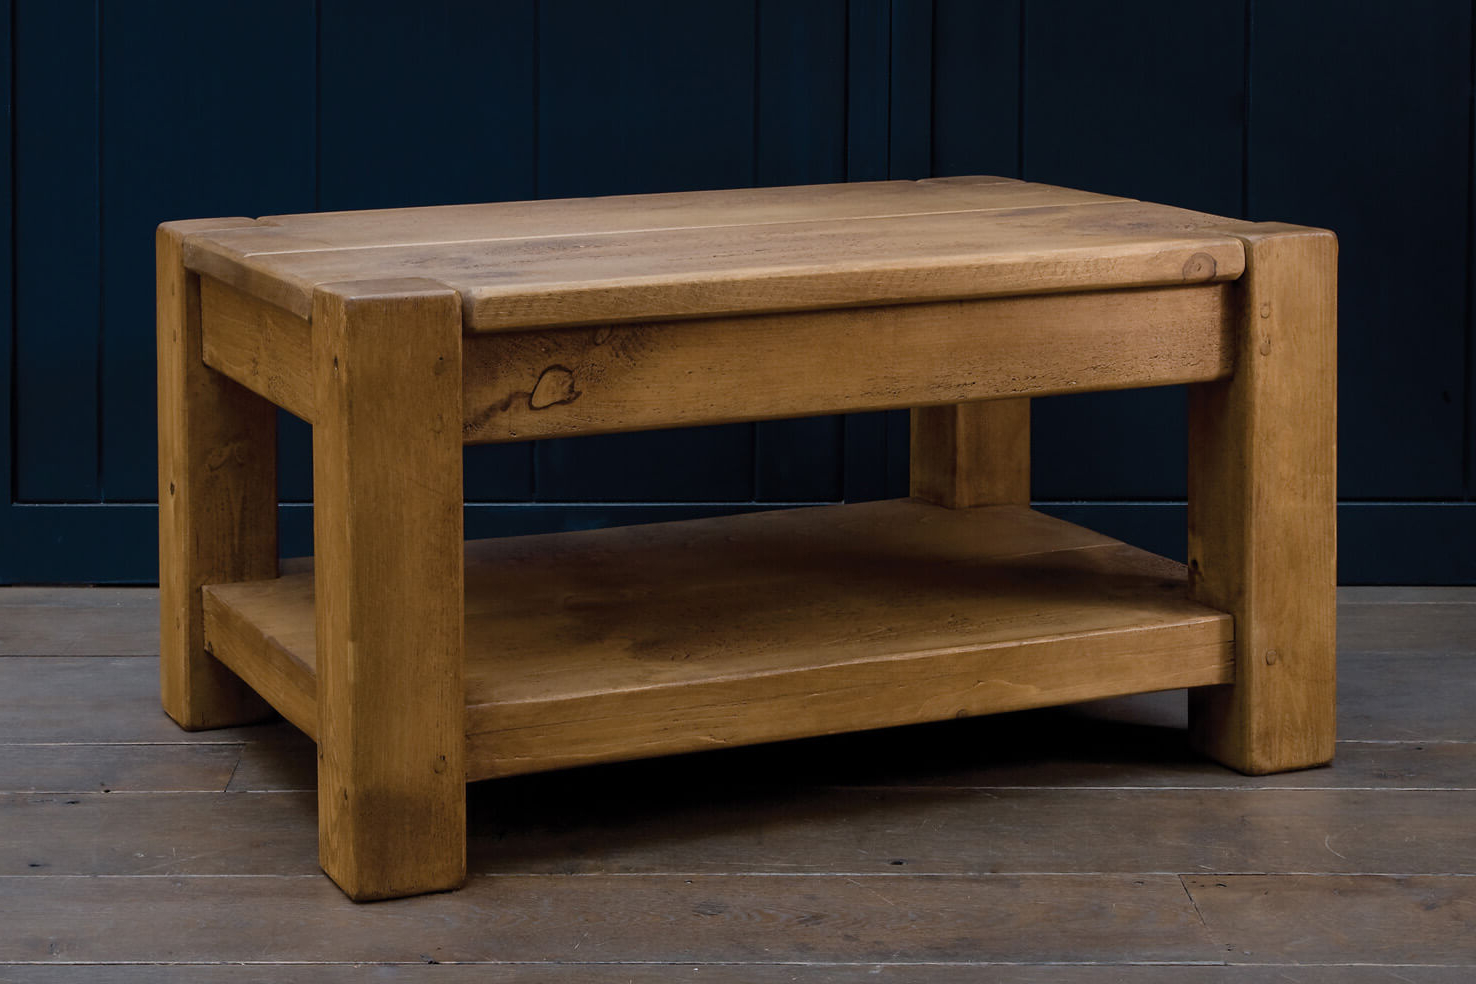 Favorite Rustic Wood Coffee Tables Handmade From Solid Oak Planks (View 13 of 20)